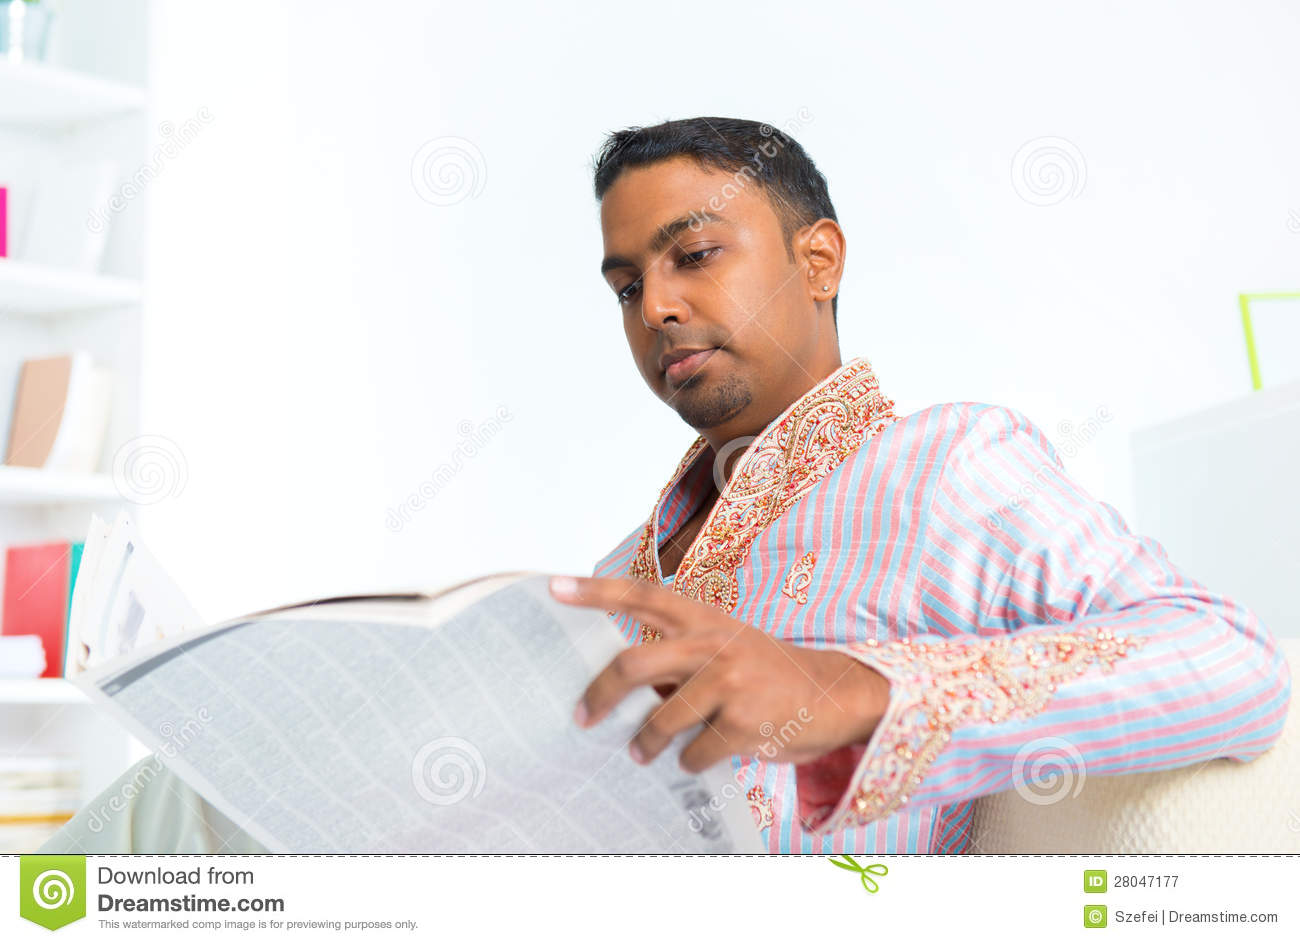 """reader hindu single men The palm reader looked at my hands and said i had a """"simian line  it's where  the head and the heart line are merged into a single line  purpose is just to be  true to myself and follow my heart and not what other people say."""